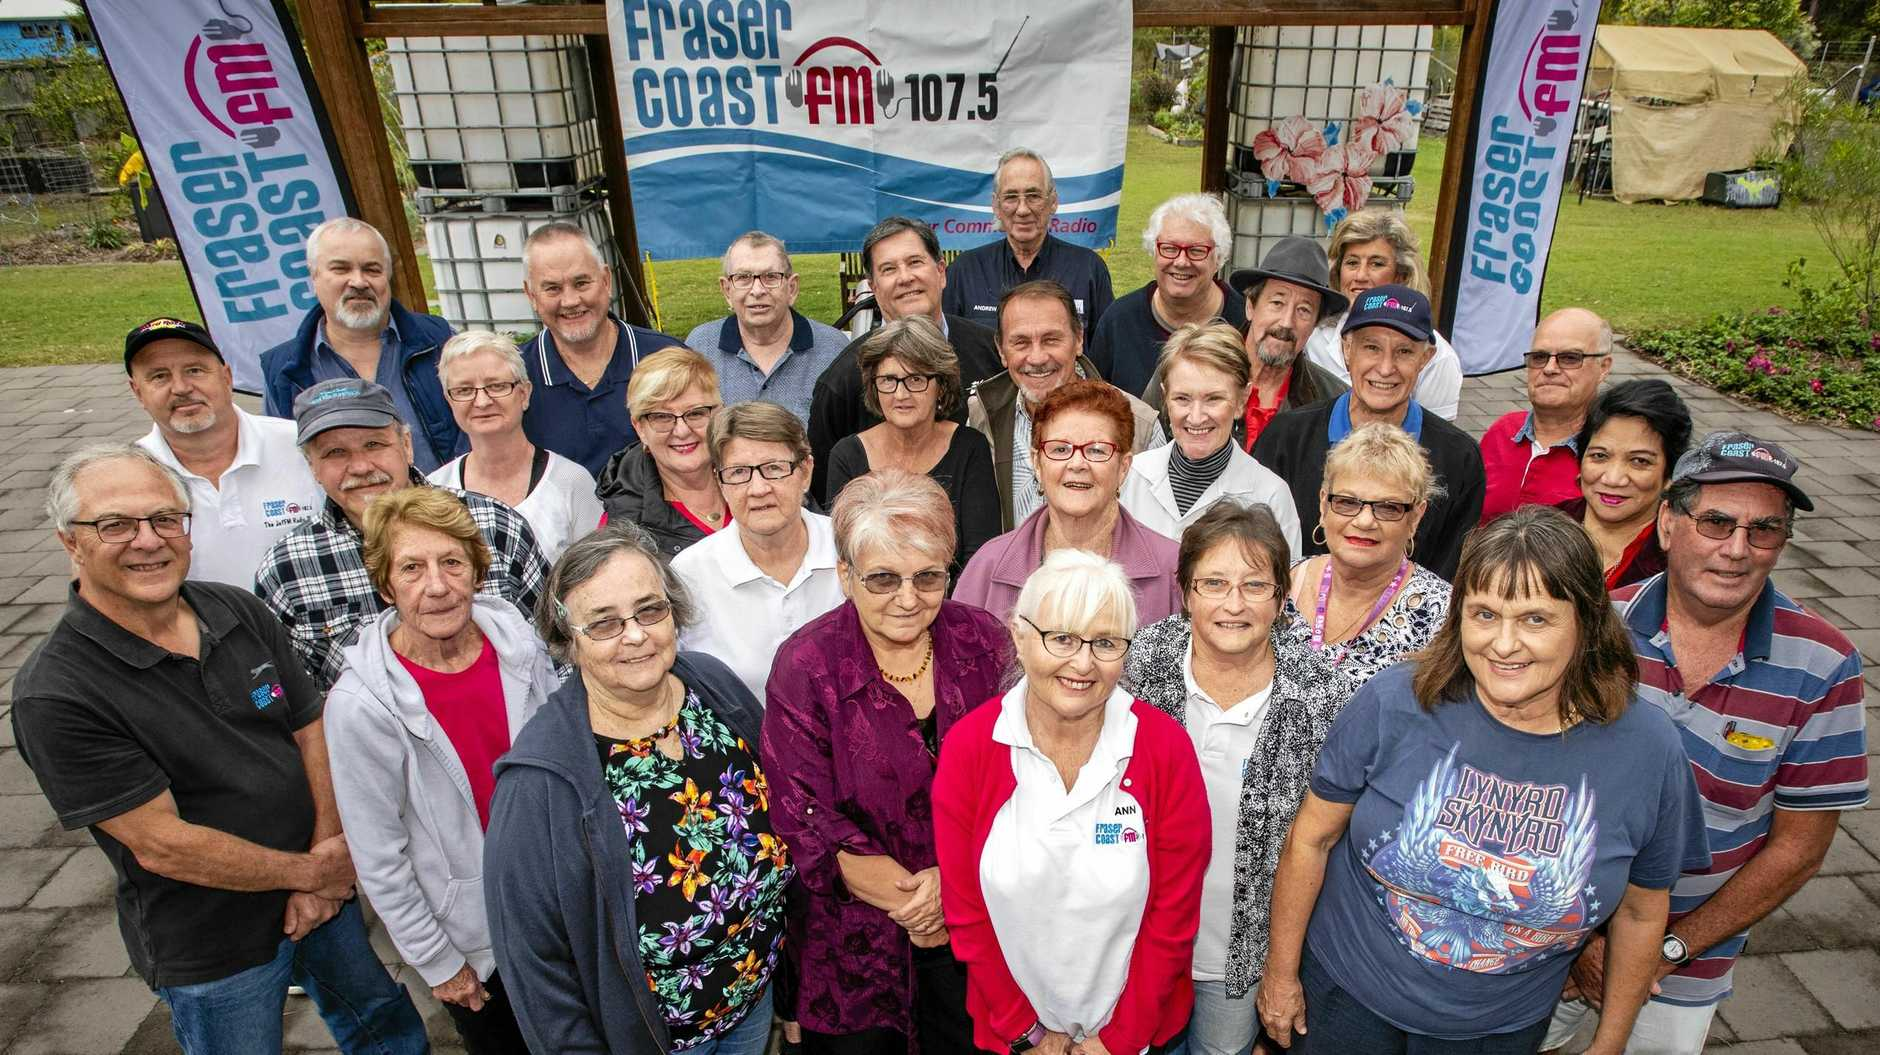 WALKING ON AIR: Fraser Coast FM 107.5 has been entertaining the Hervey Bay region by providing music, local information and news for 25 years.